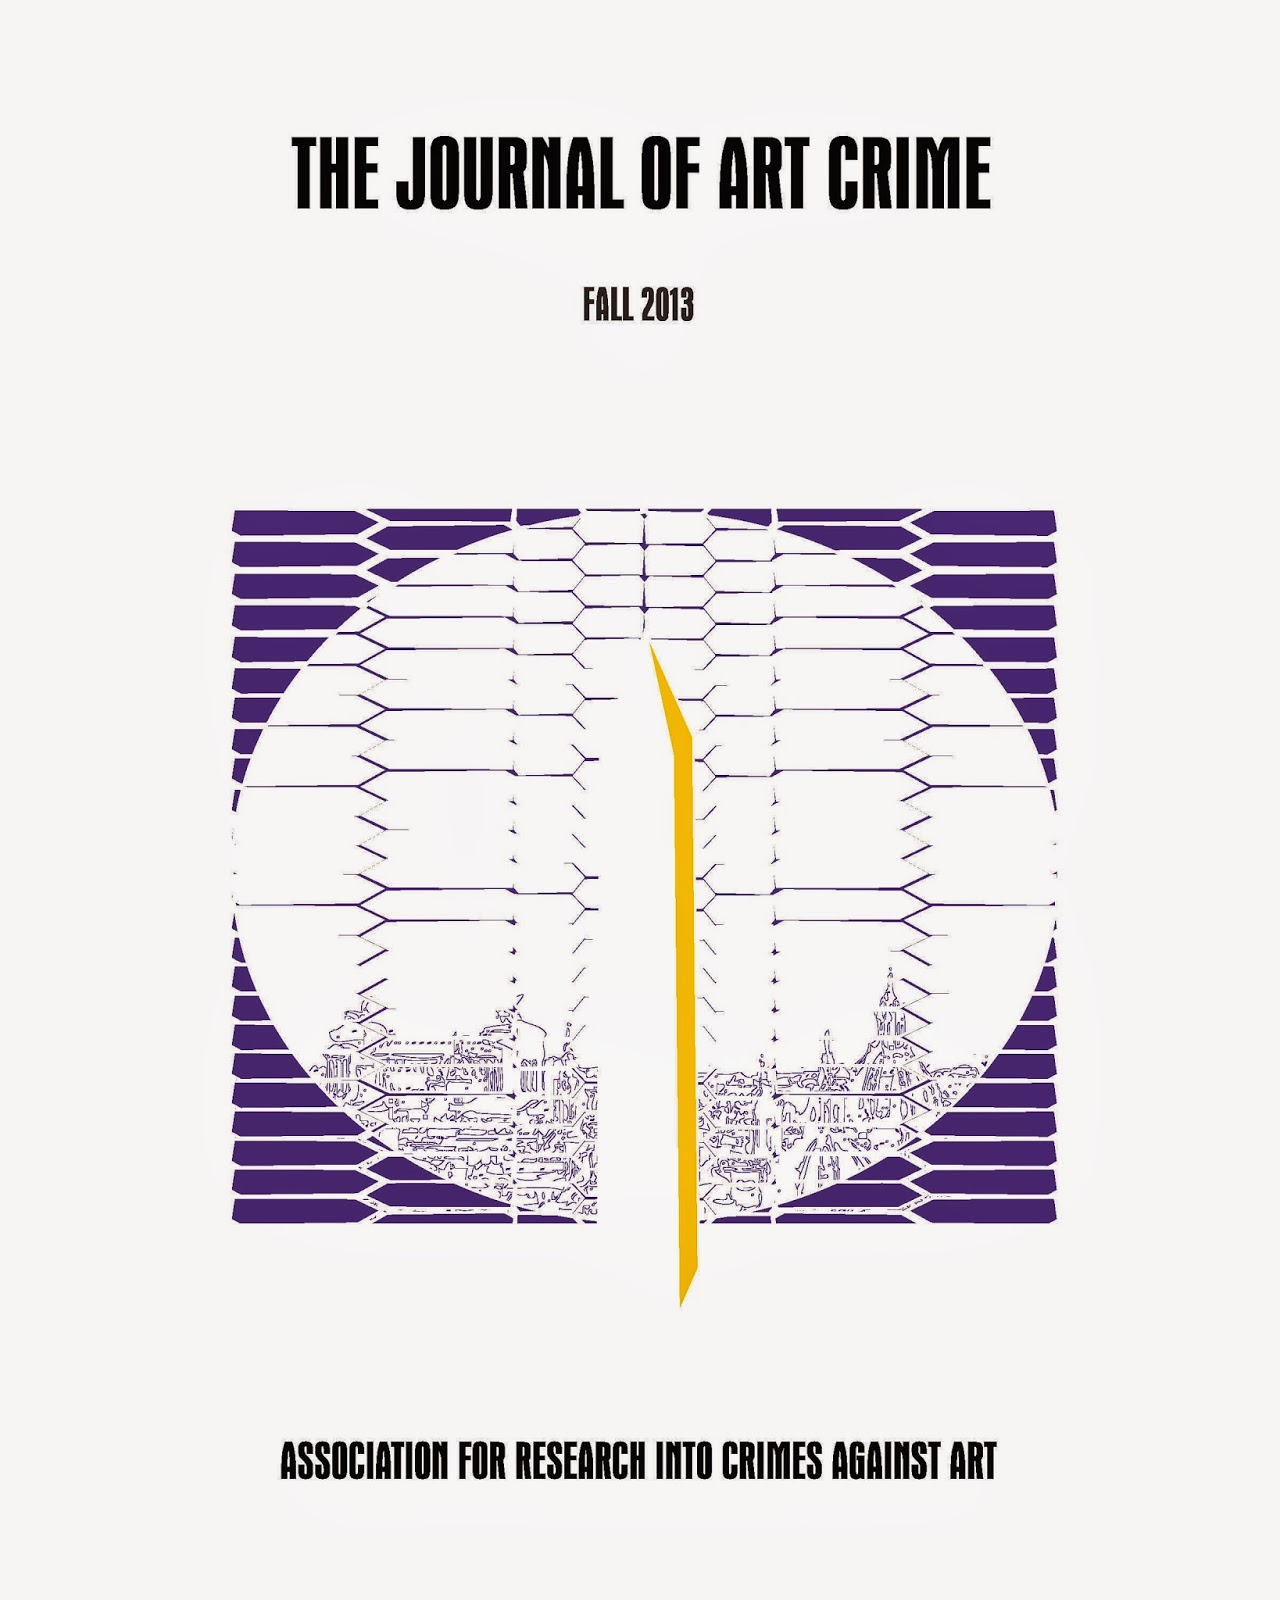 victorian art theft in england early cases and sociology of the victorian art theft in england early cases and sociology of the crime noah charney and john kleberg in the fall 2013 issue of the journal of art crime